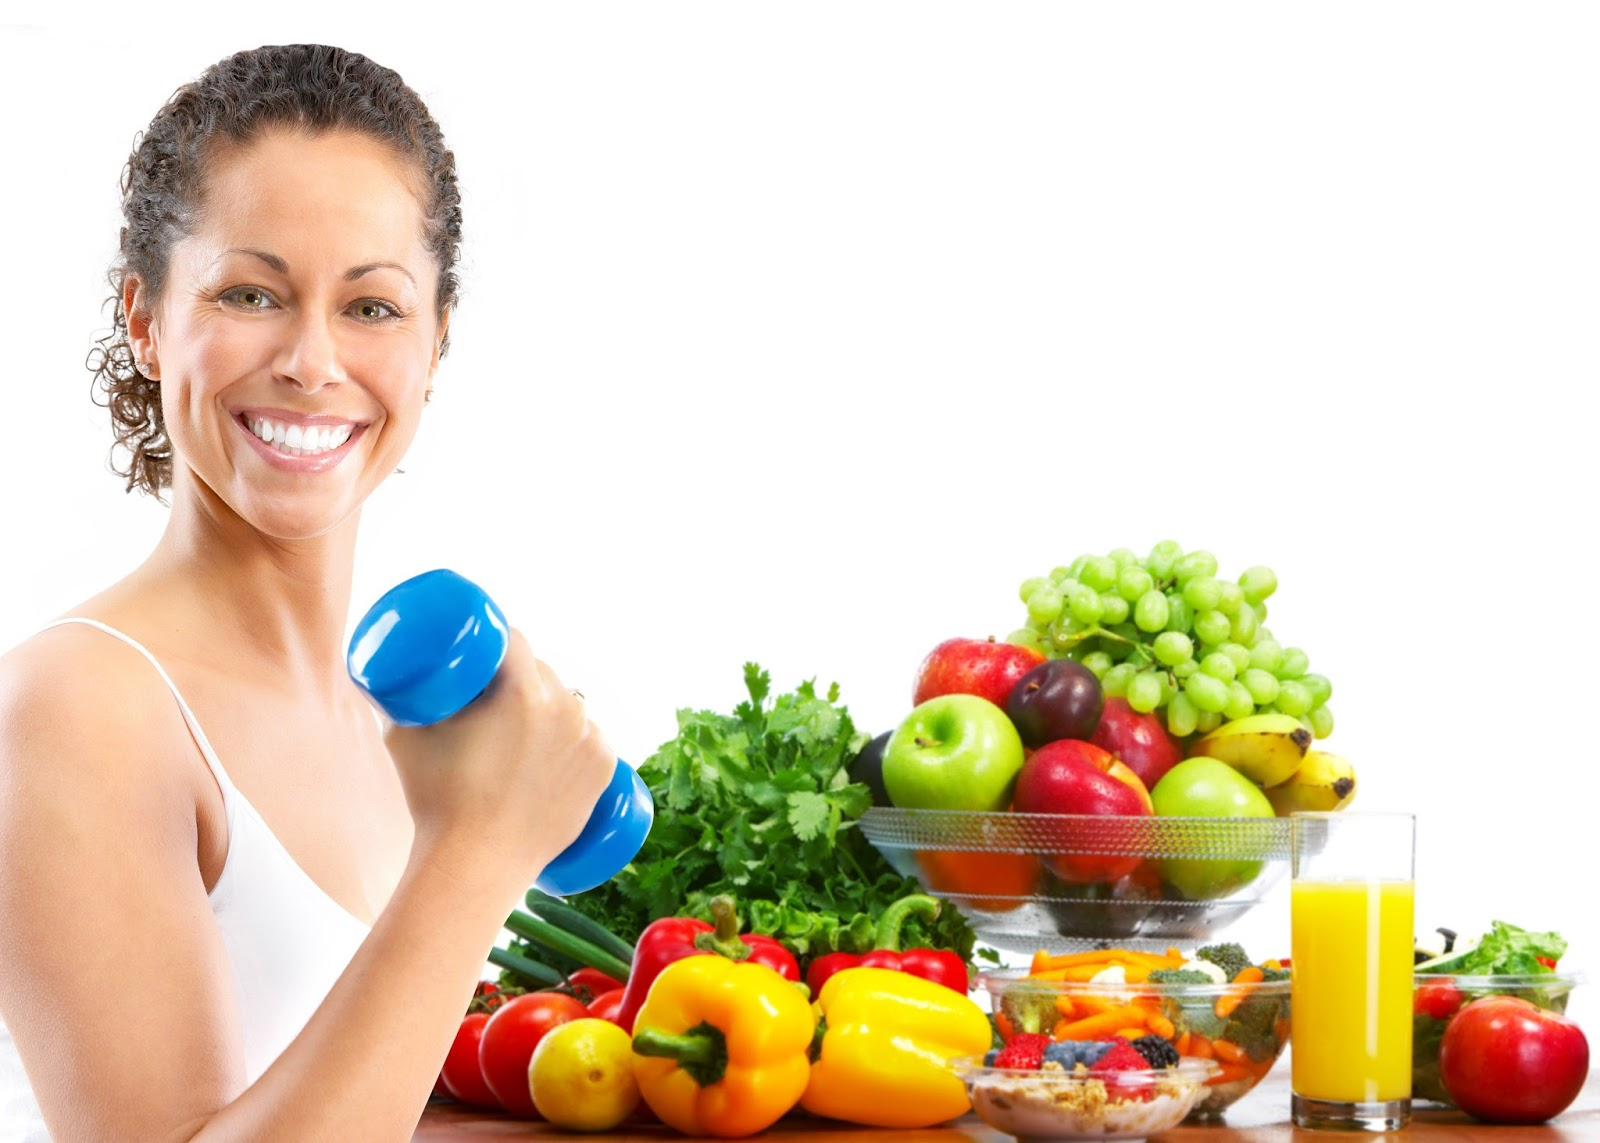 4 Golden Rules of Natural Dieting